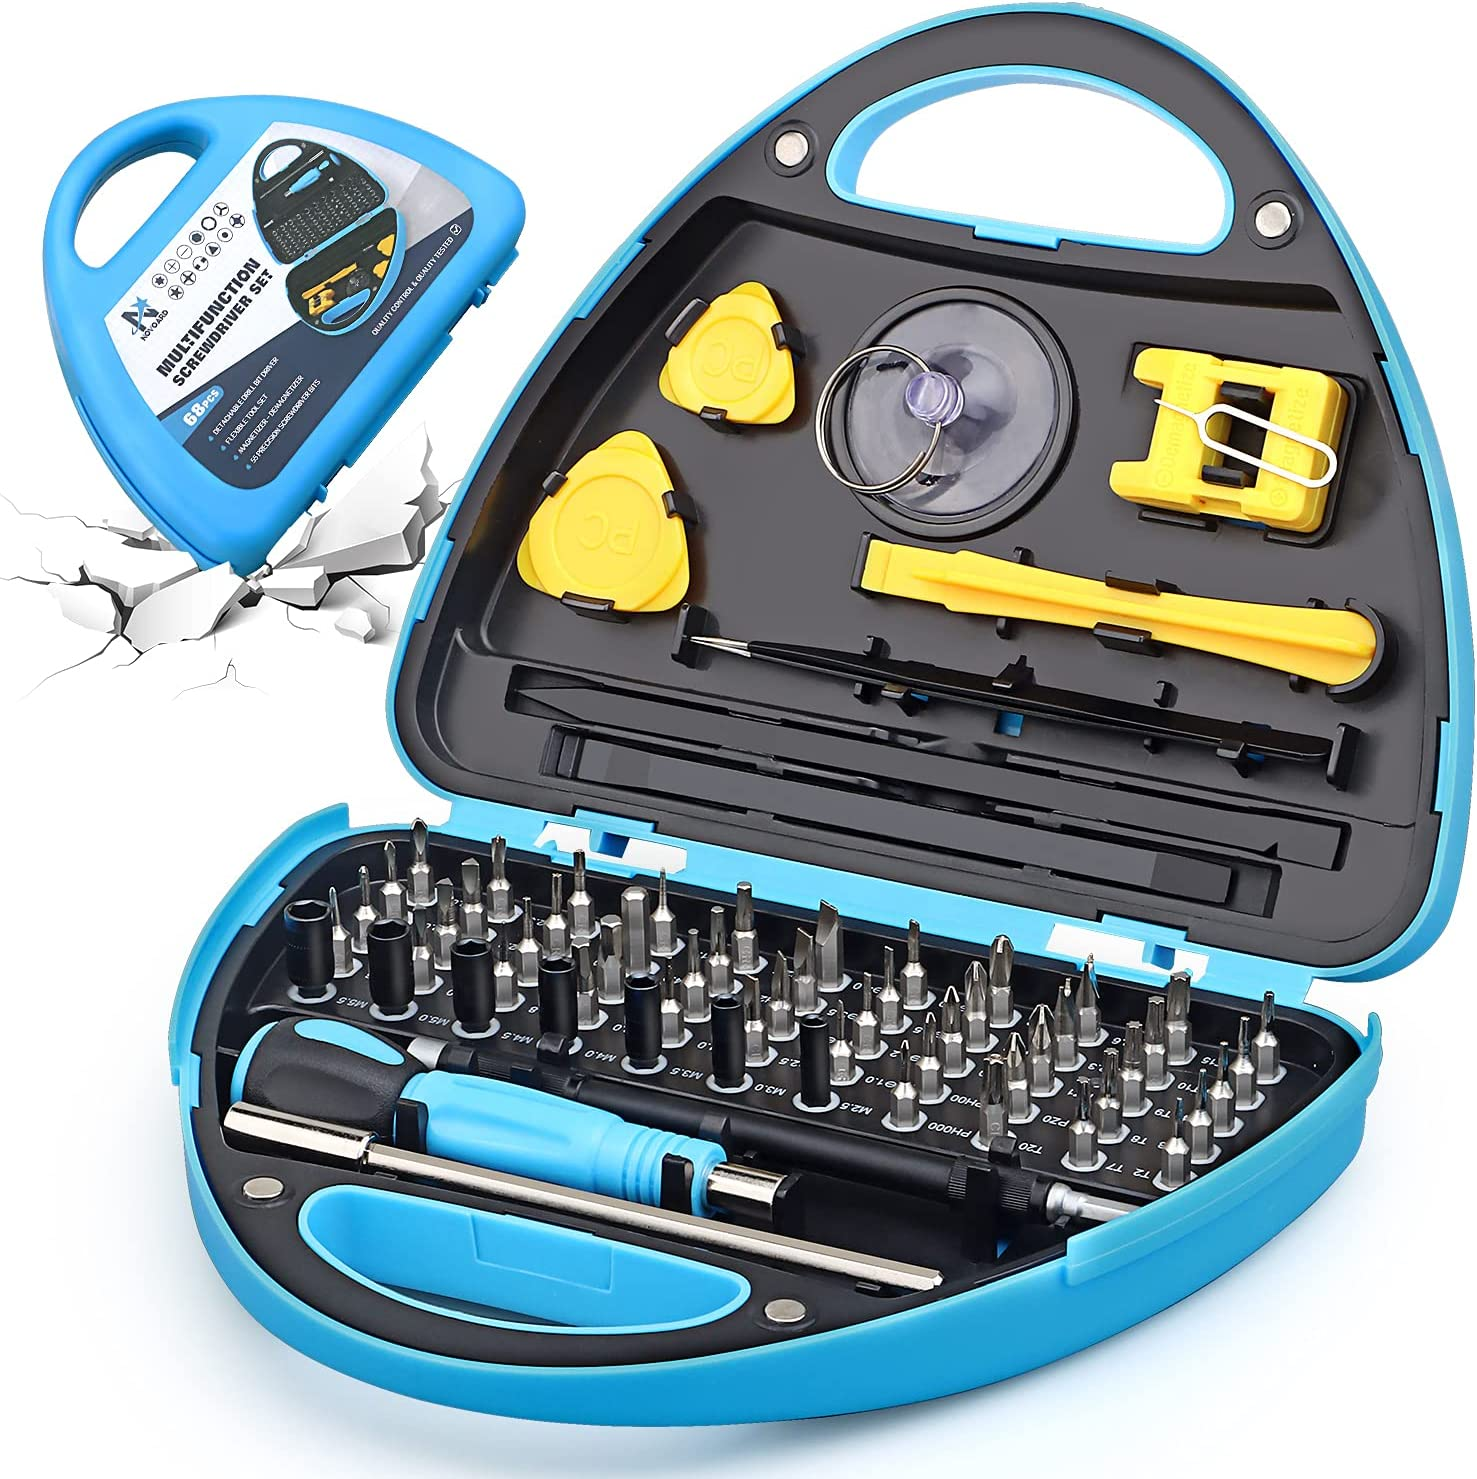 Computer Repair Tool Kit, Novoard Precision Laptop Screwdriver Set with 55 Magnetic Bits, Professional Repair Kit Compatible for iPhone, MacBook, PC, Electronic, Laptop, PS4, Xbox, etc(N-2134)